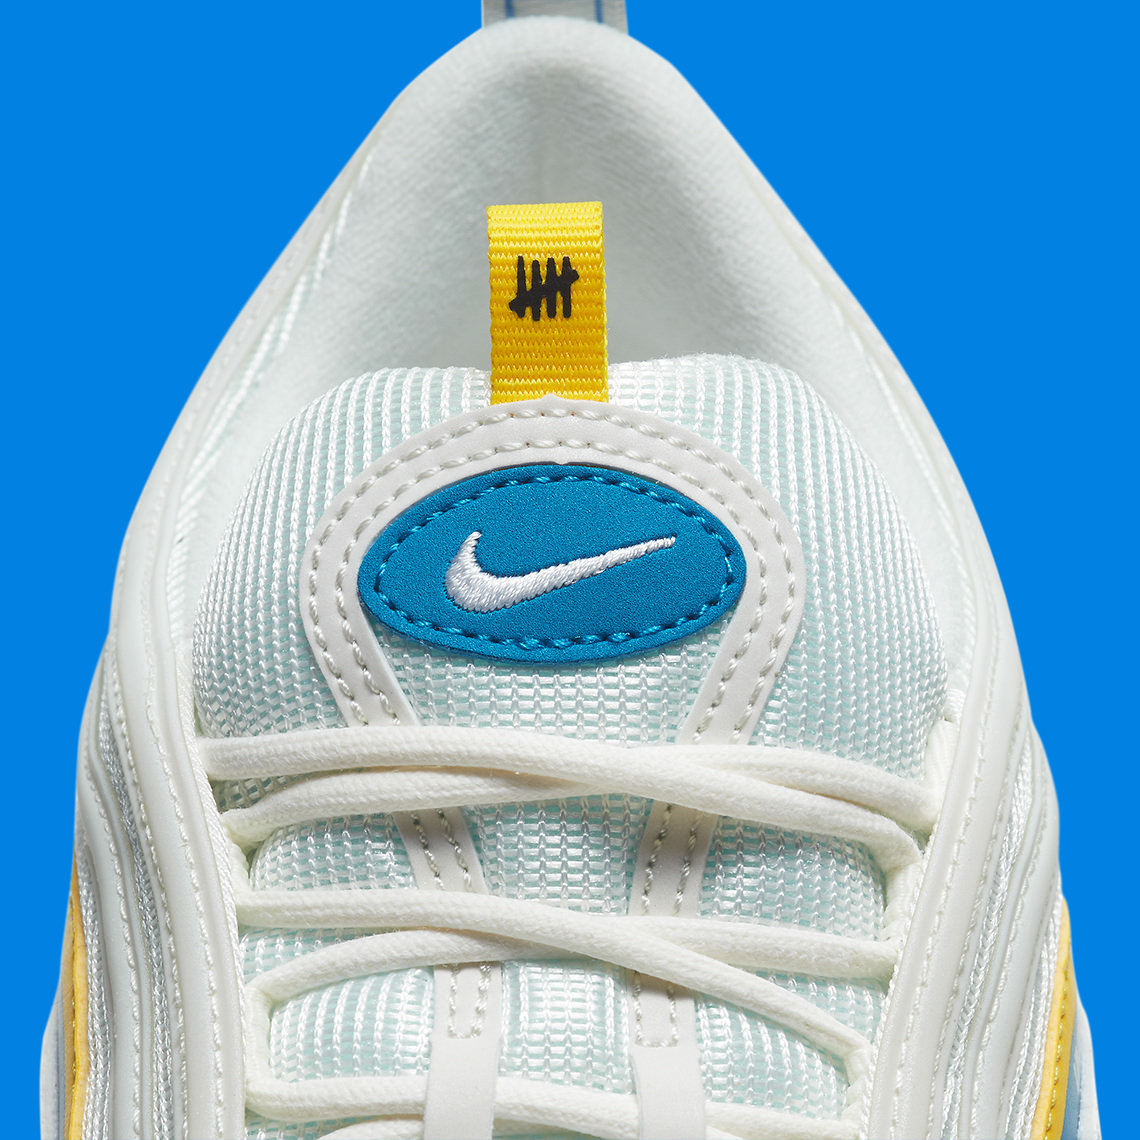 undefeated-nike-air-max-97-ucla-DC4830-100-release-date-9